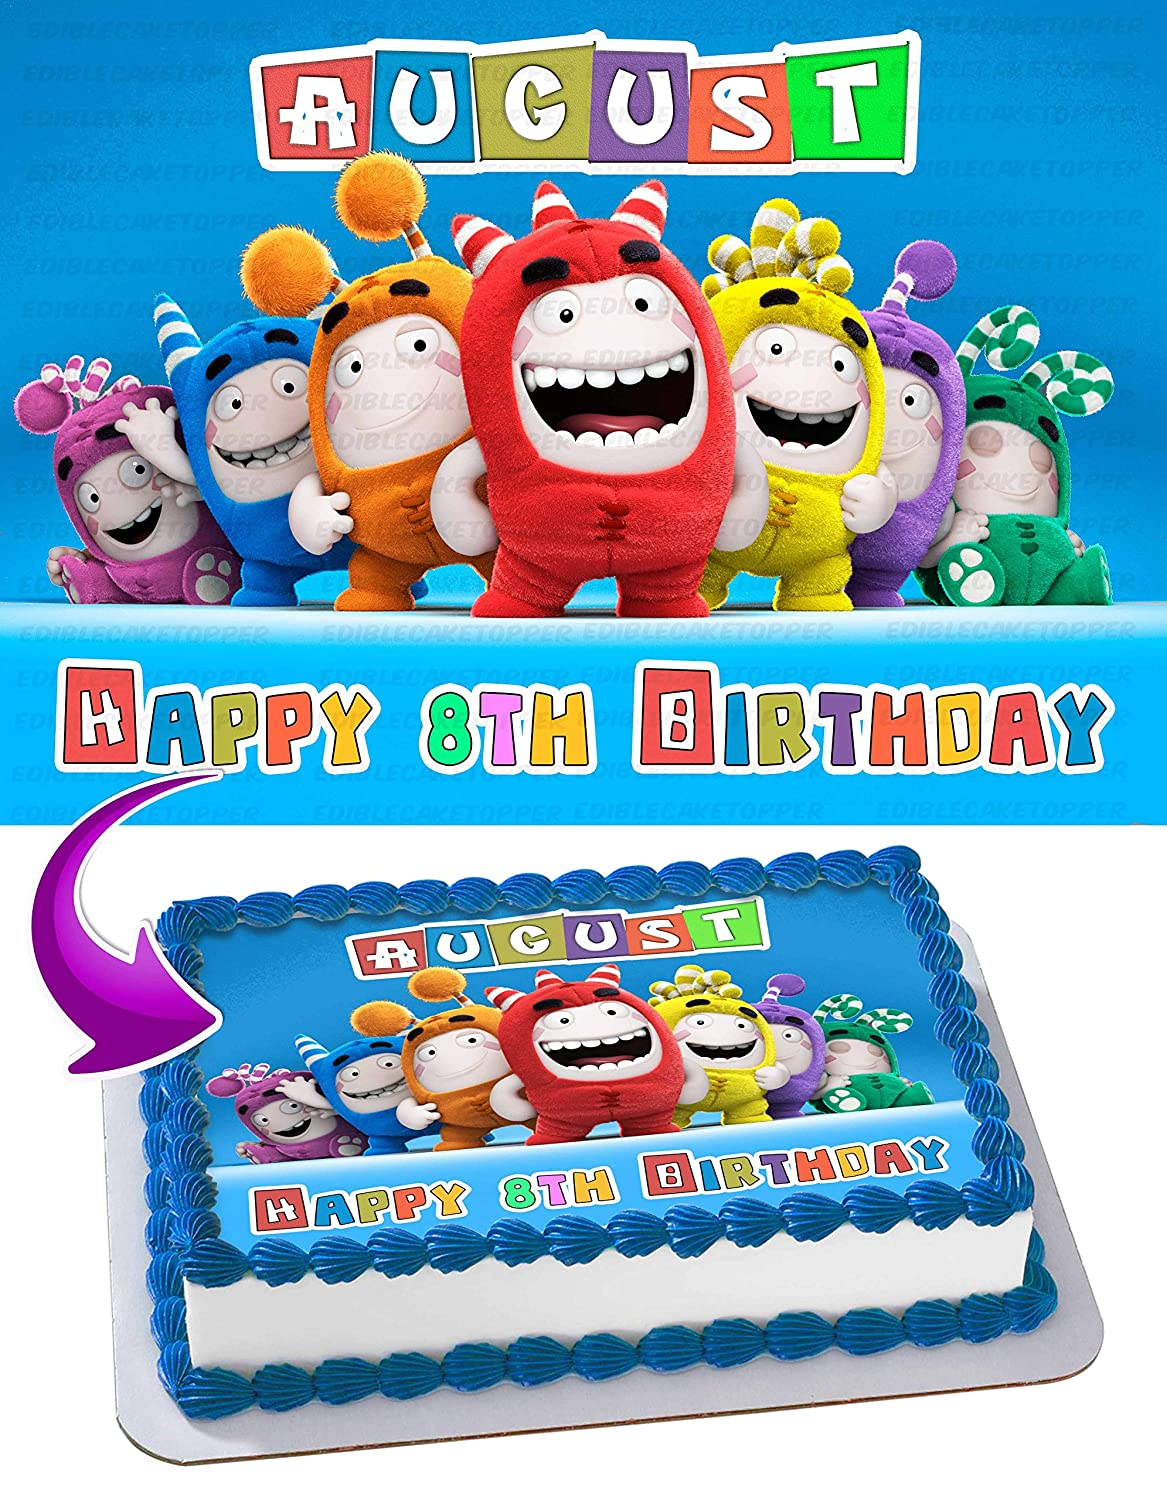 Oddbods Edible Image Cake Topper Personalized Icing Sugar Paper A4 Sheet Edible Frosting Photo Cake 1//4 ~ Best Quality Edible Image for cake